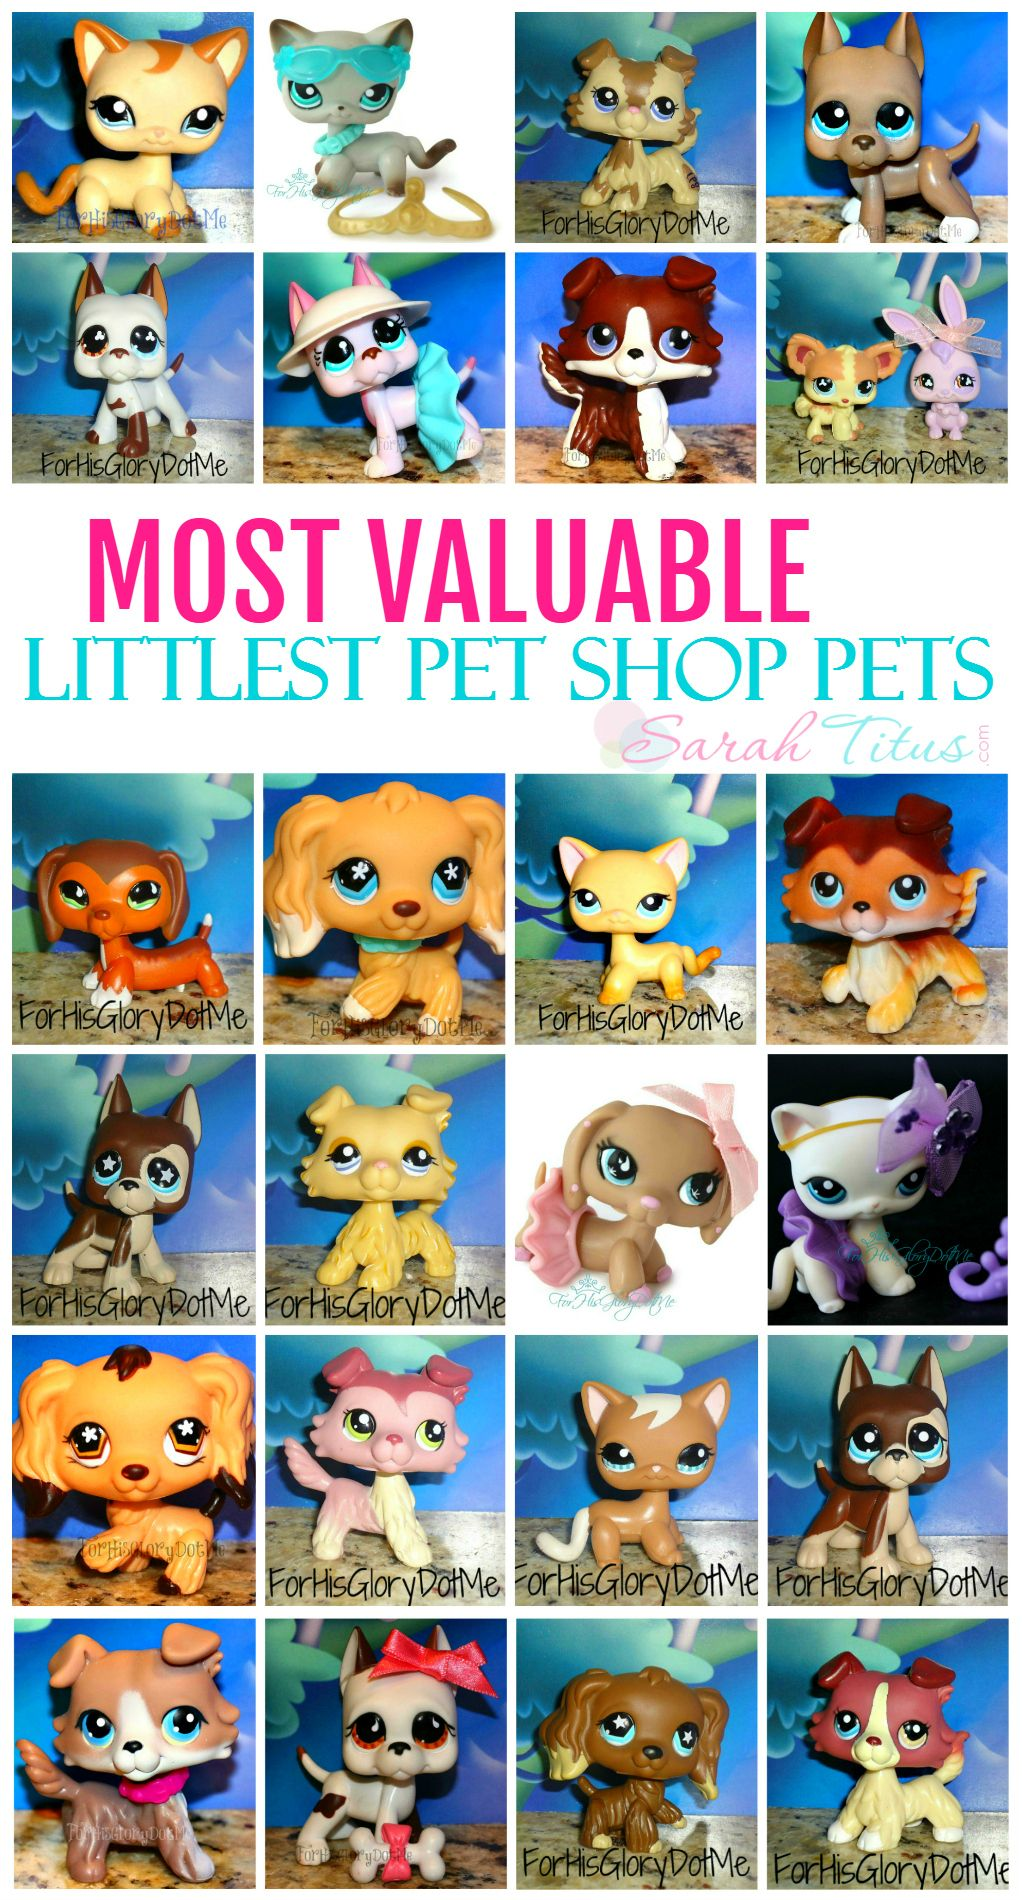 Most Valuable Rare Littlest Pet Shop Pets List Lps Pets Lps Toys Little Pet Shop Toys